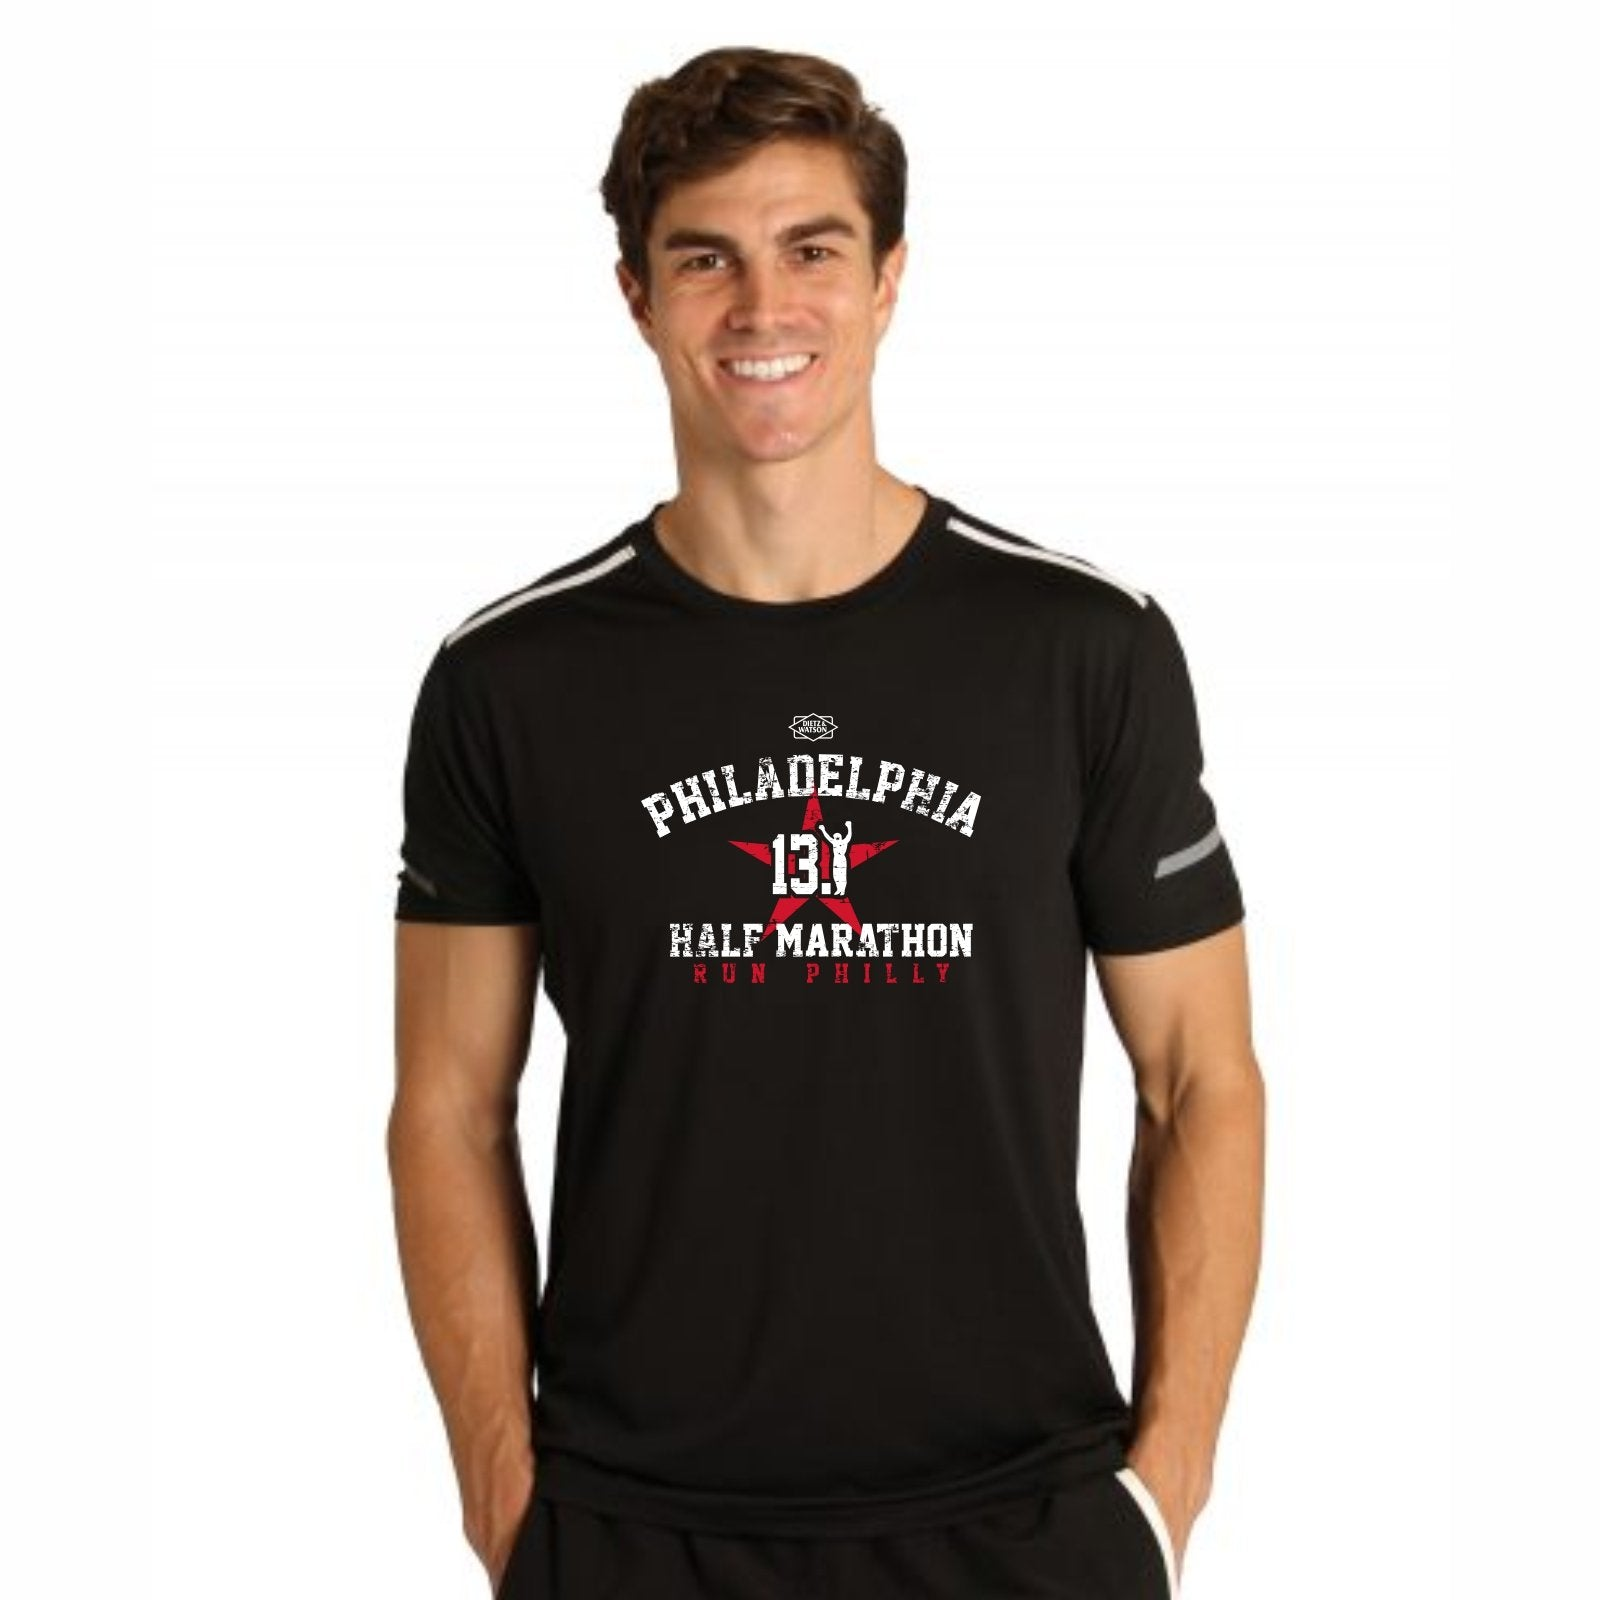 Men's SS Colorblock Tech Tee -Black 'Arch Design' - AACR Philadelphia Marathon